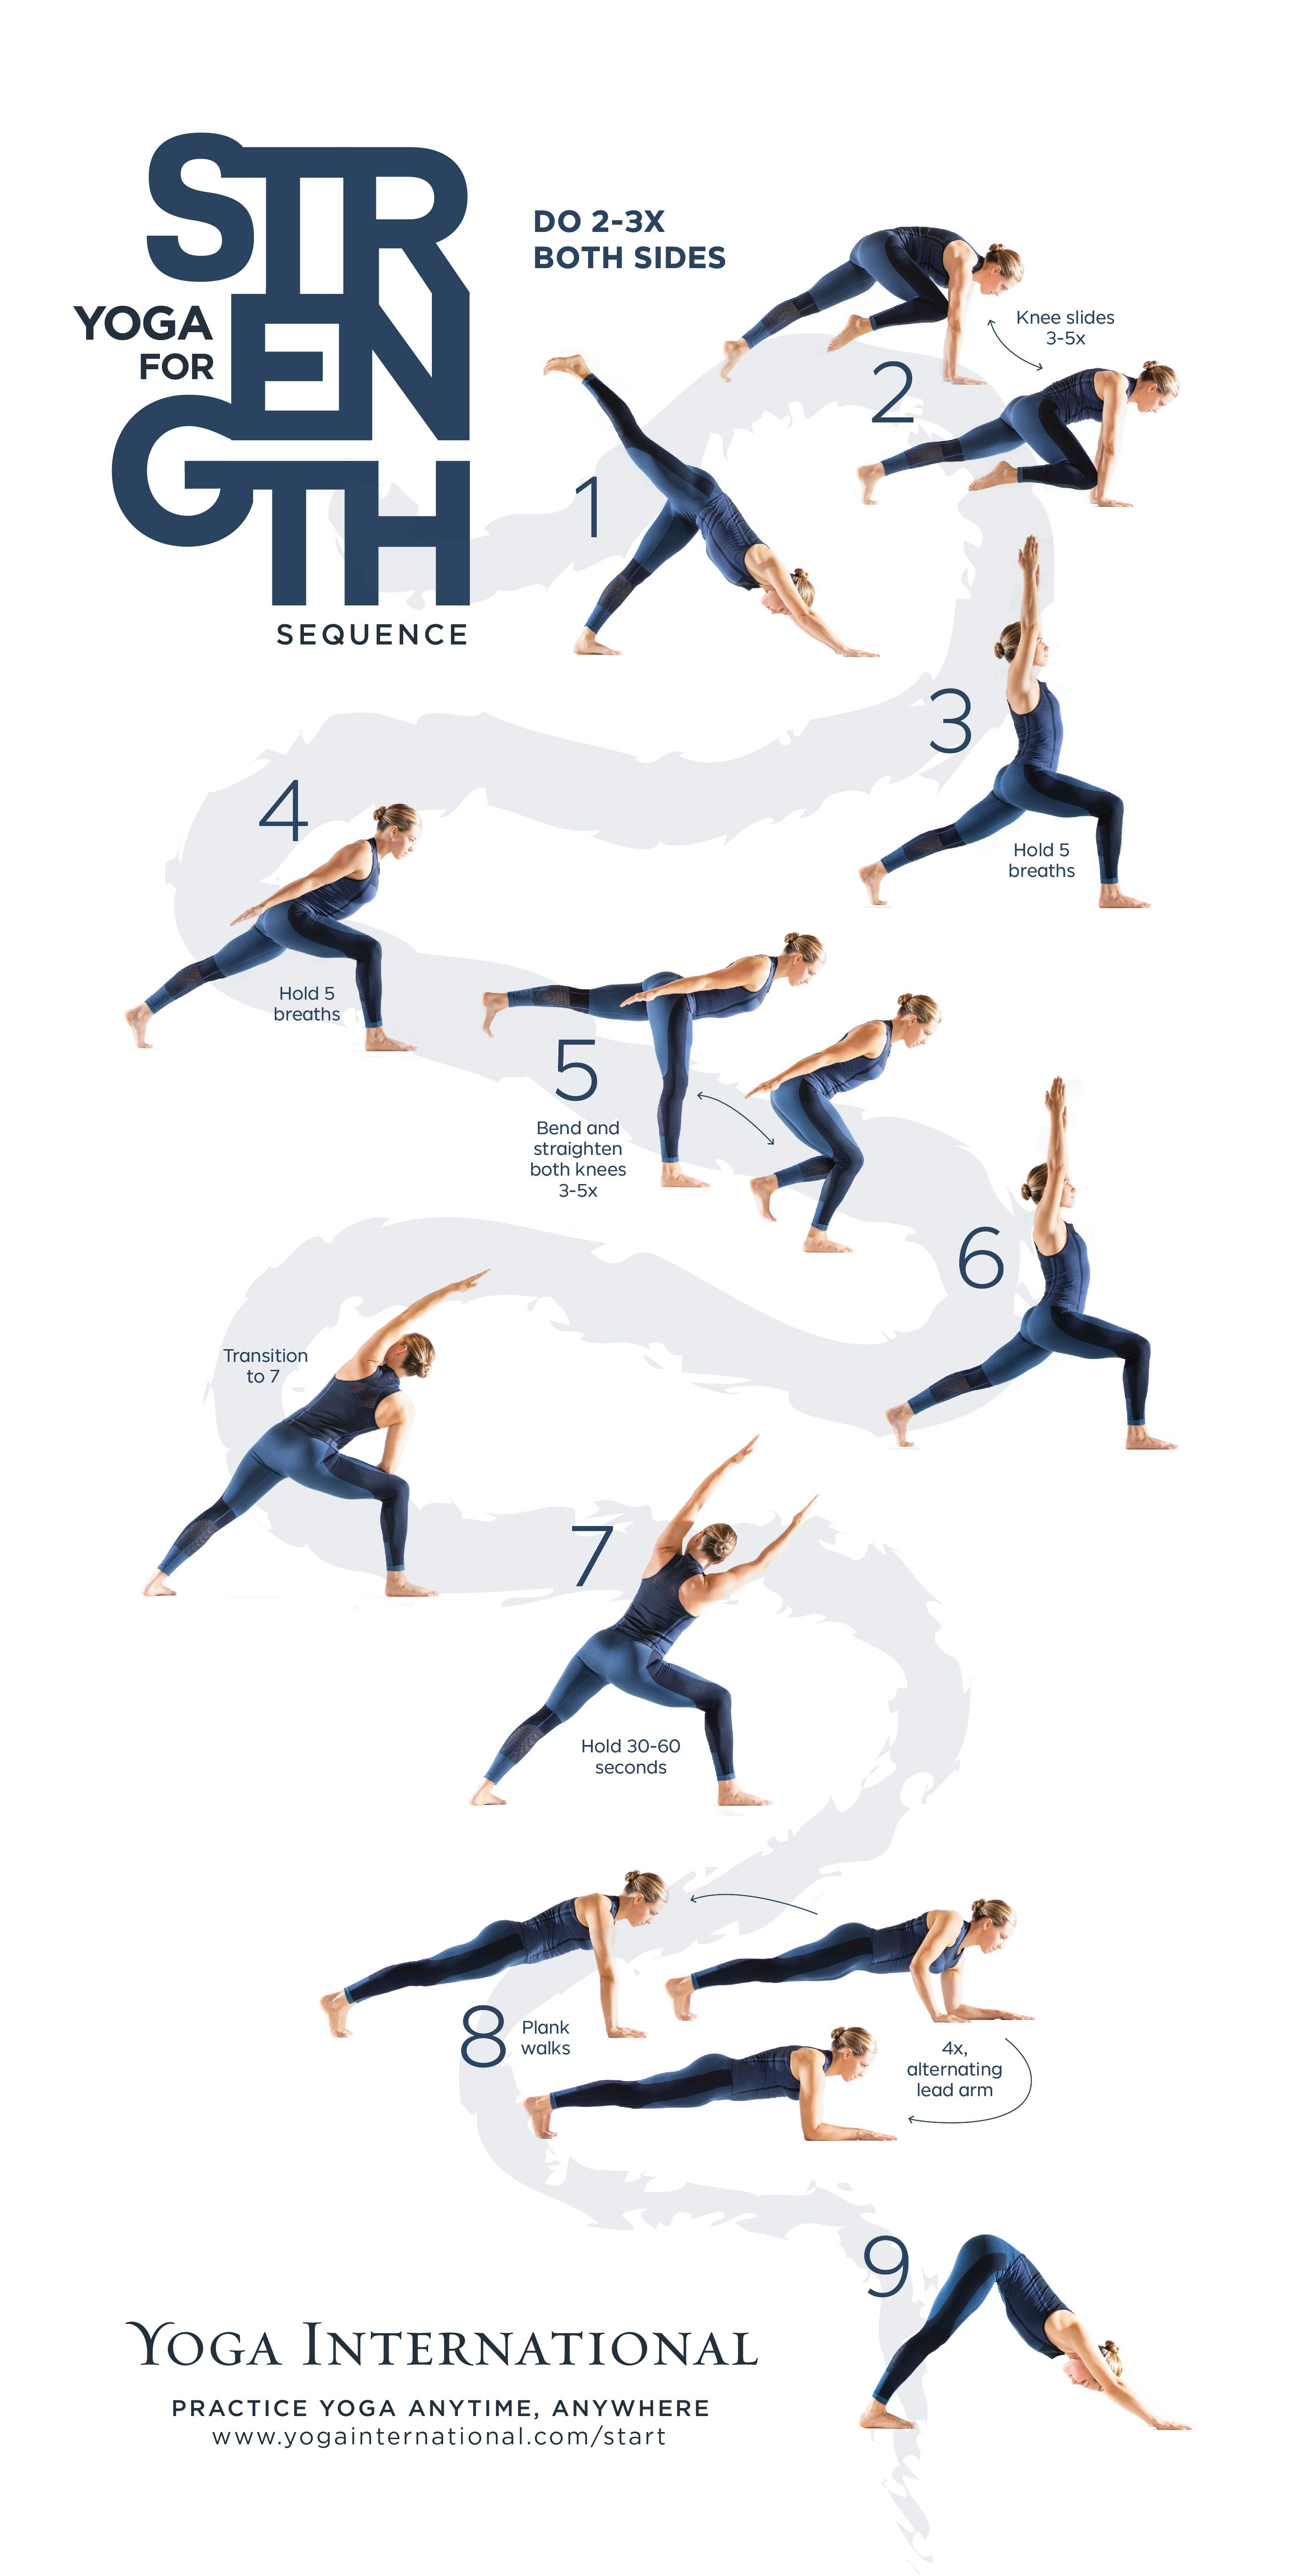 Become A Member With Yoga International And Discover An Entire Library Of Classes Articles And Challenges Sta Yoga International Yoga Training Yoga Postures